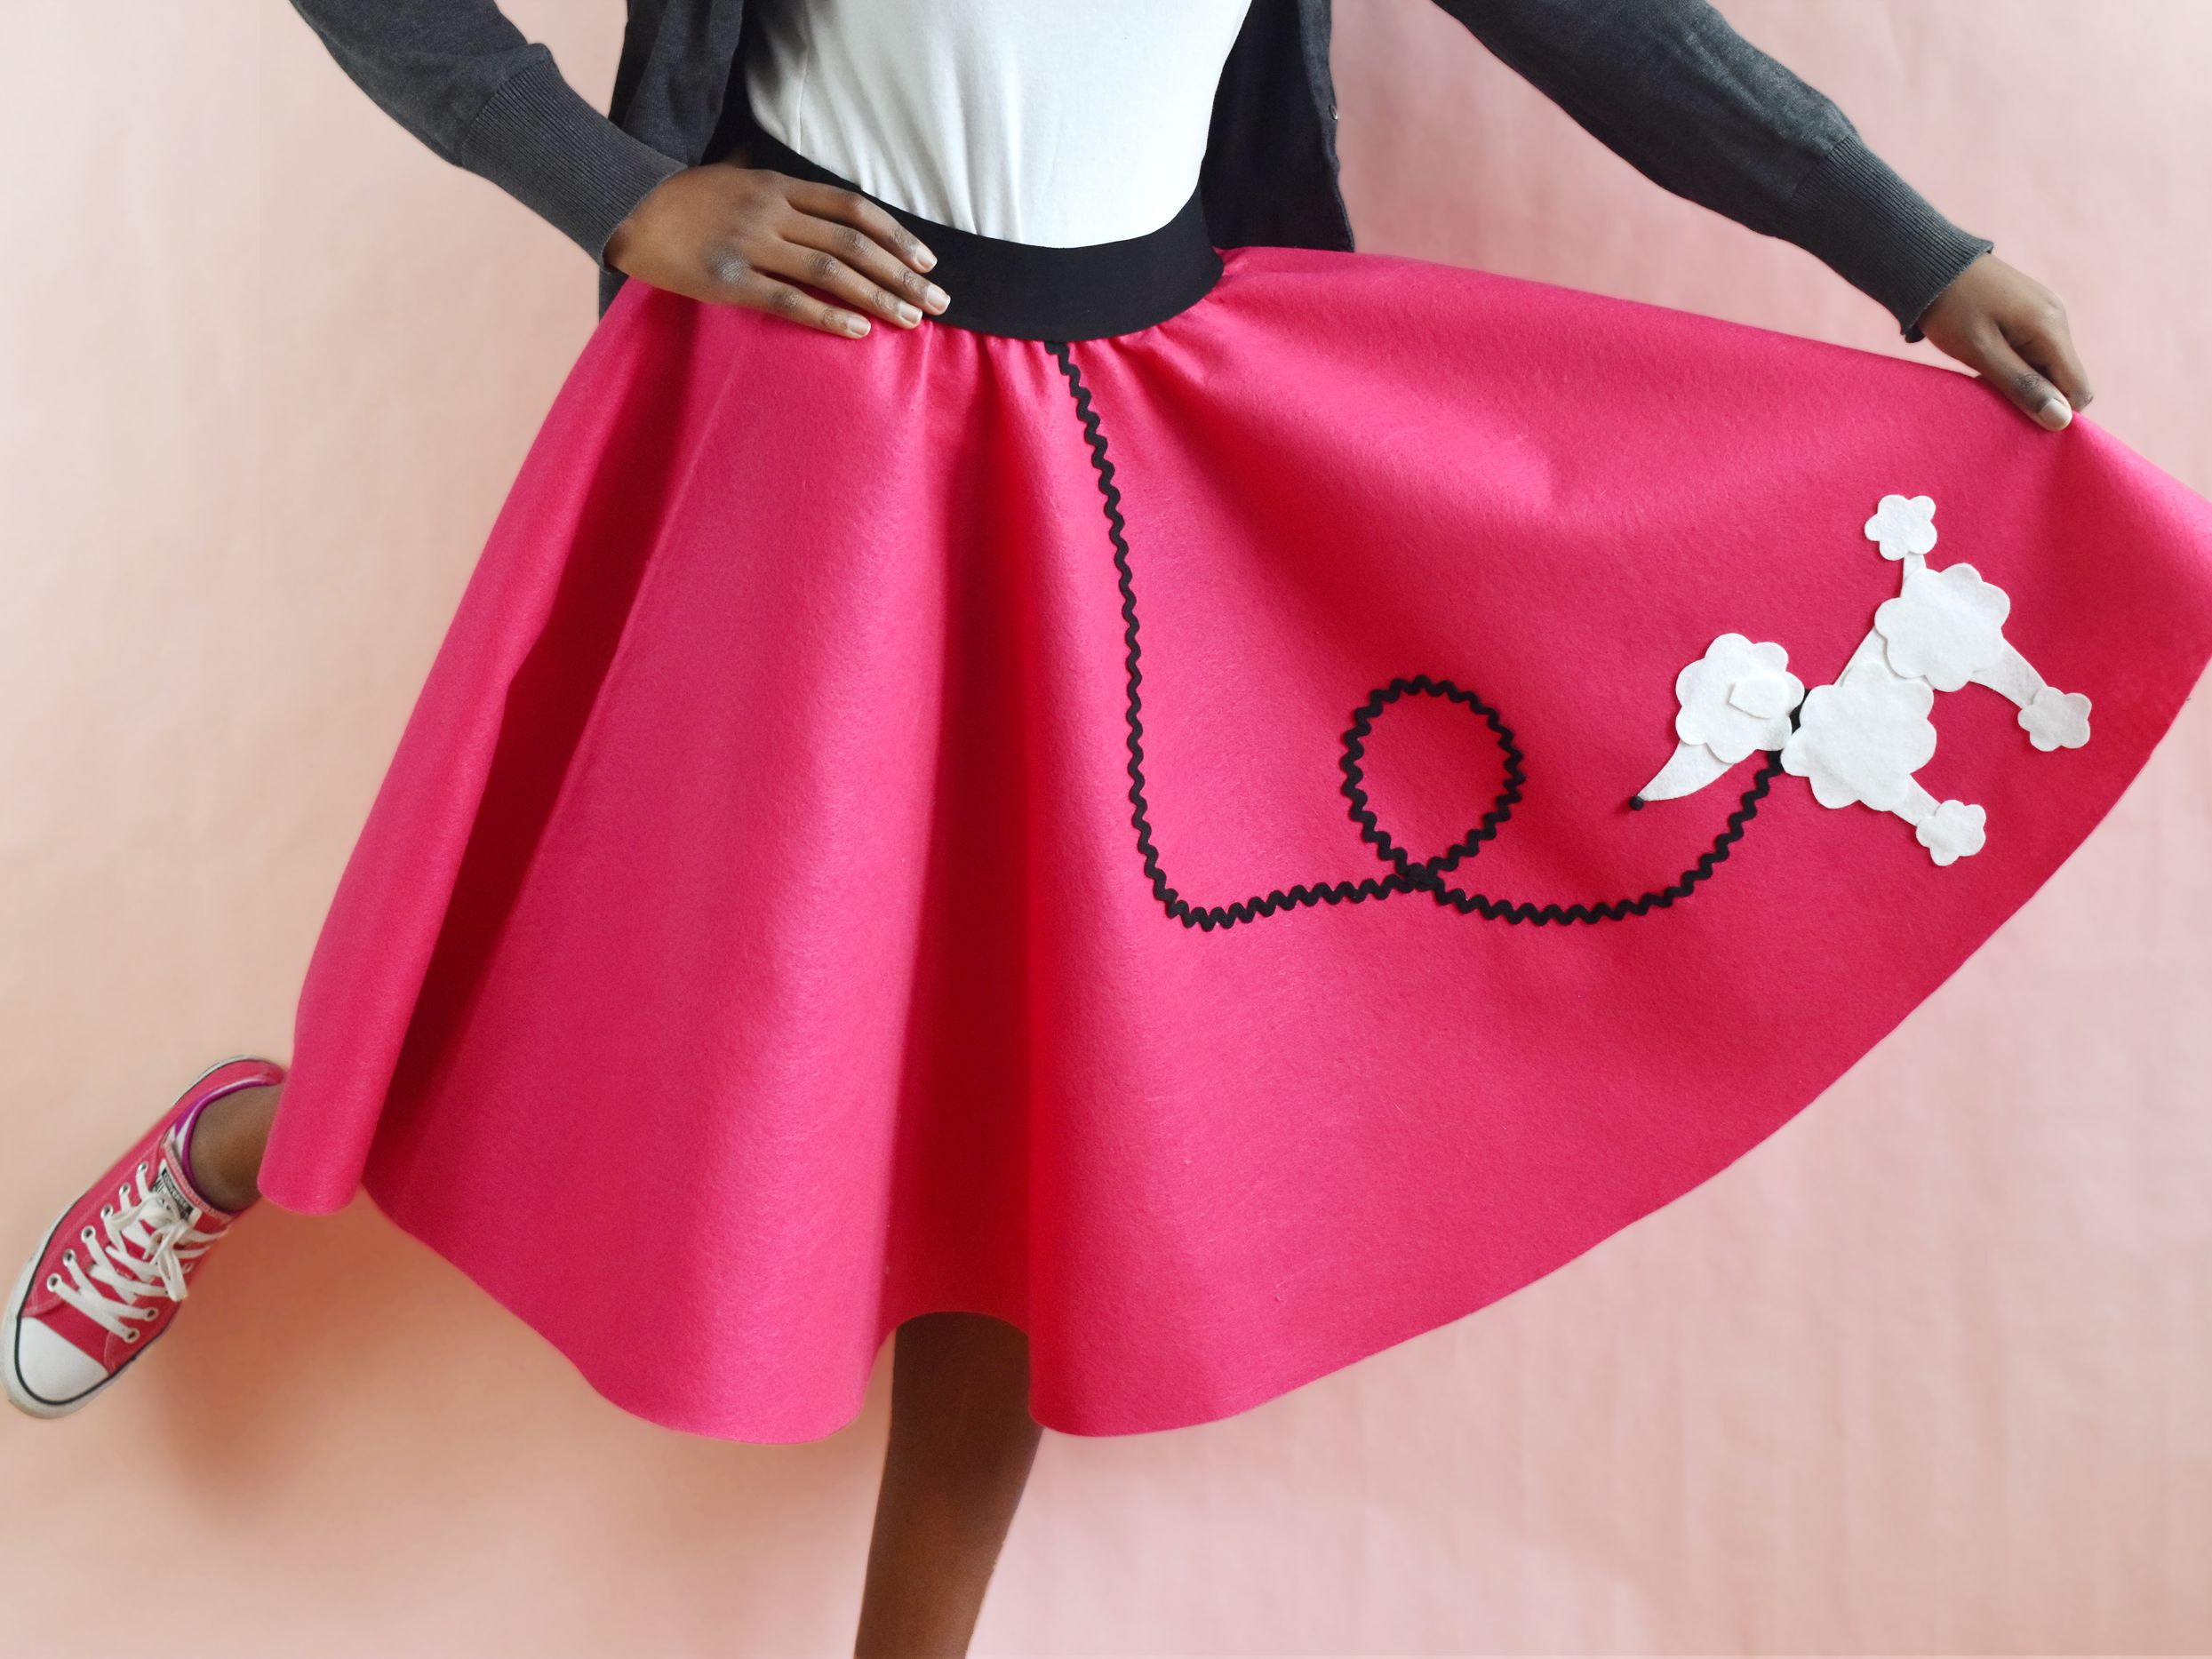 19a89160d How to Make an Easy-Sew Poodle Skirt